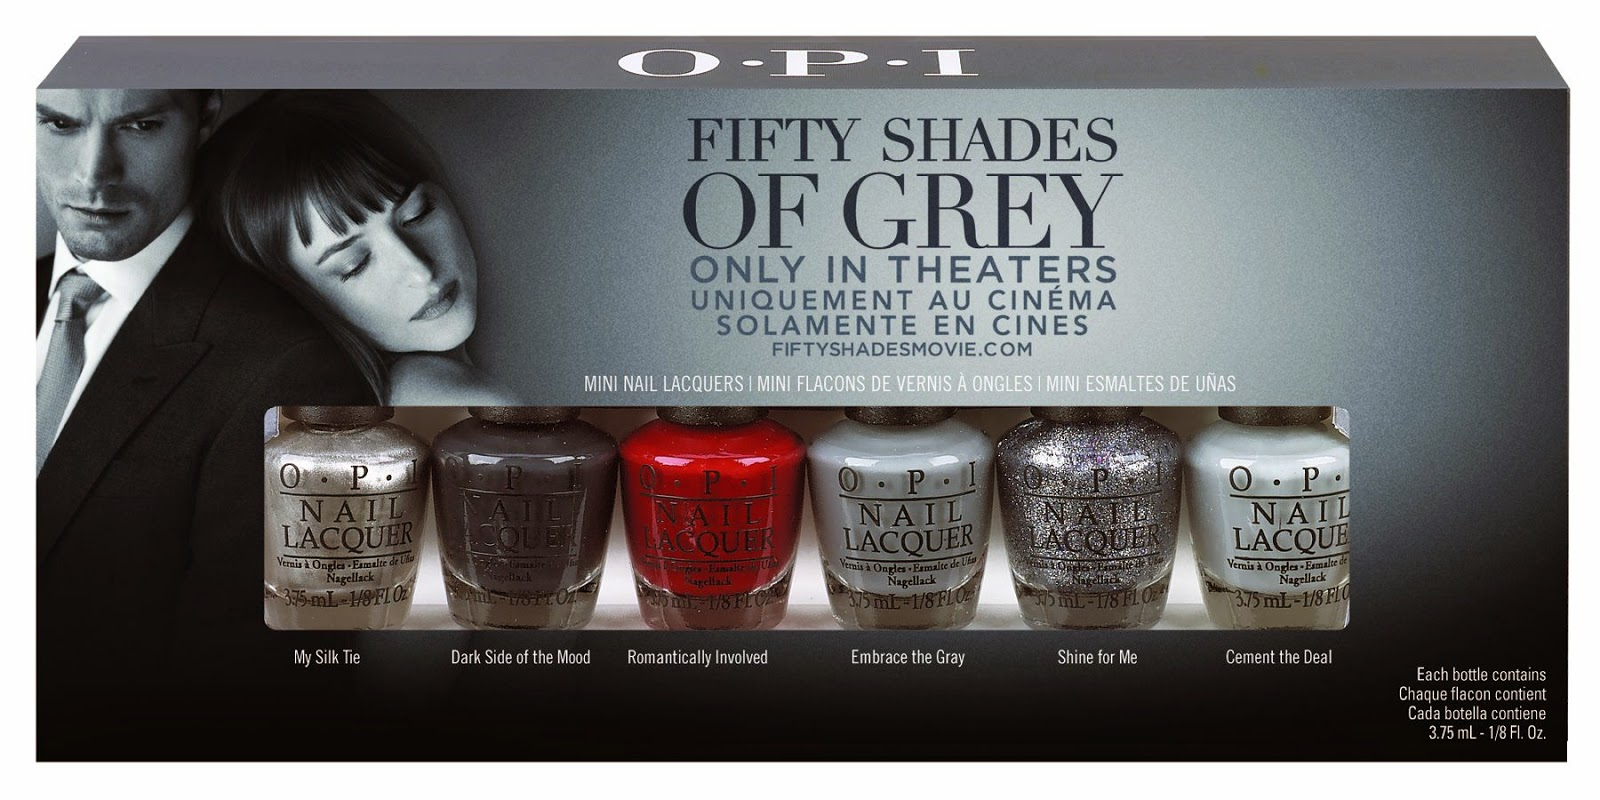 O.P.I launches 50 shades of Grey collection + GIVEAWAY movie passes